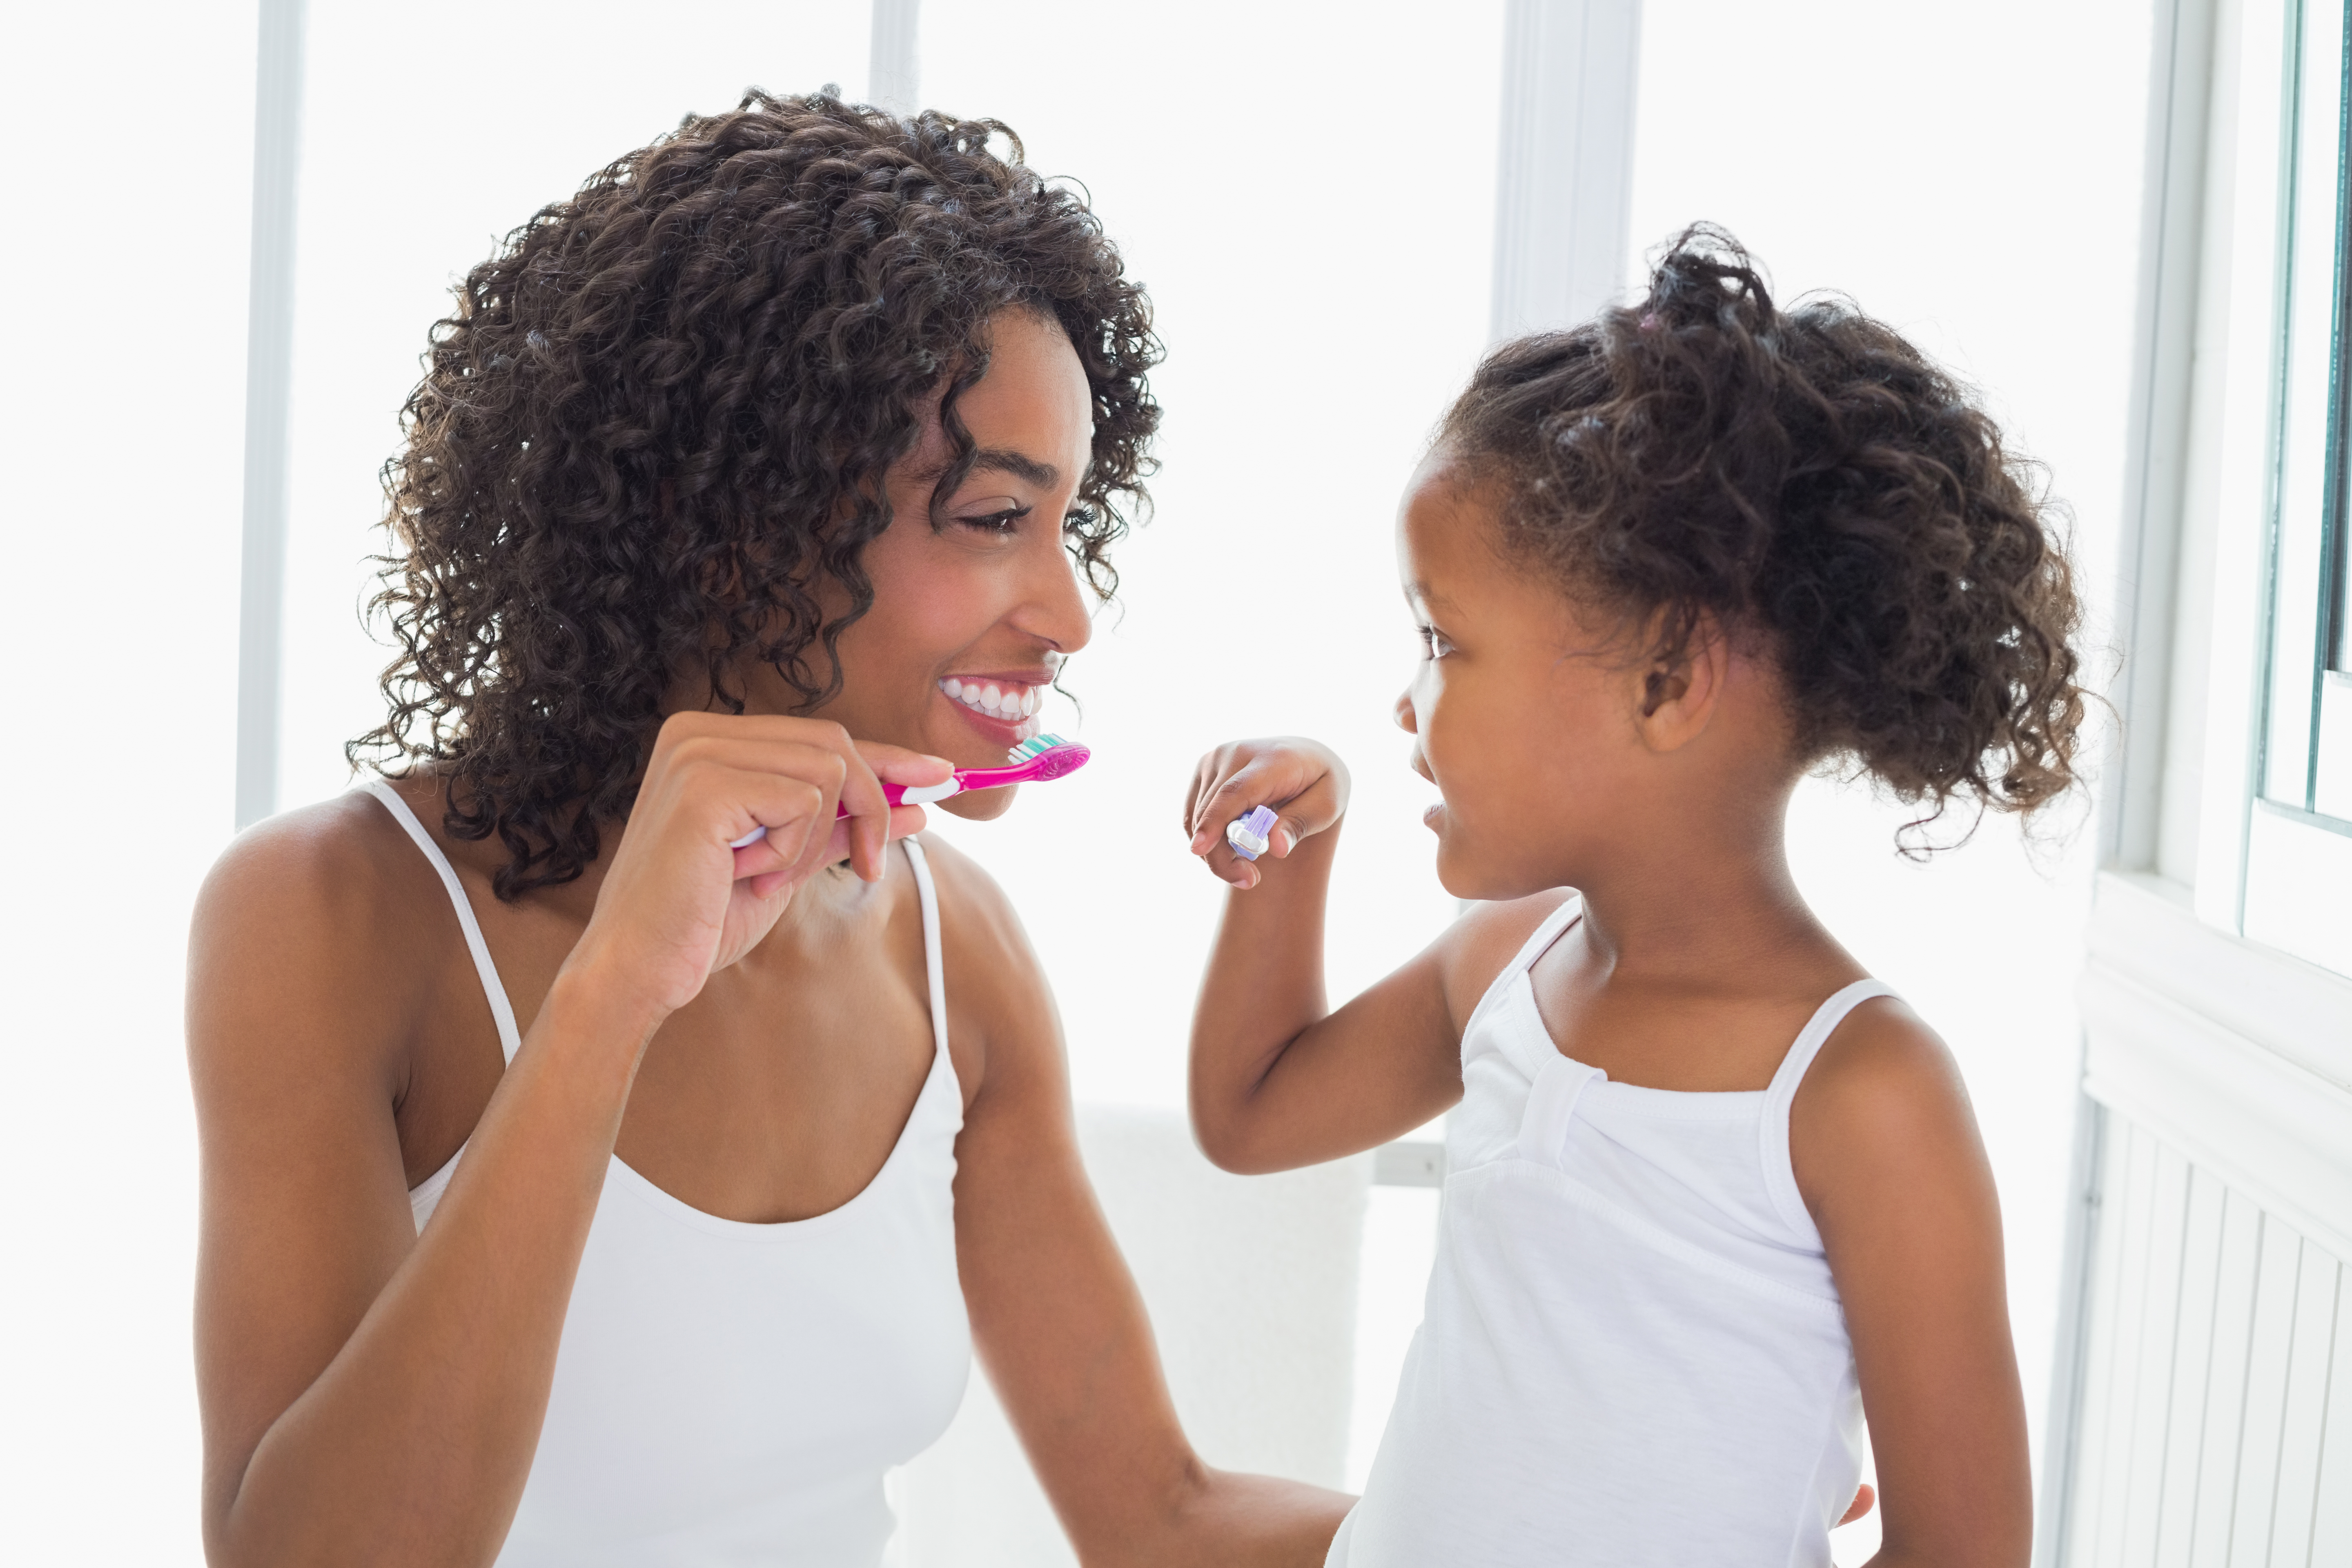 What to Know About Your Child's Oral Health